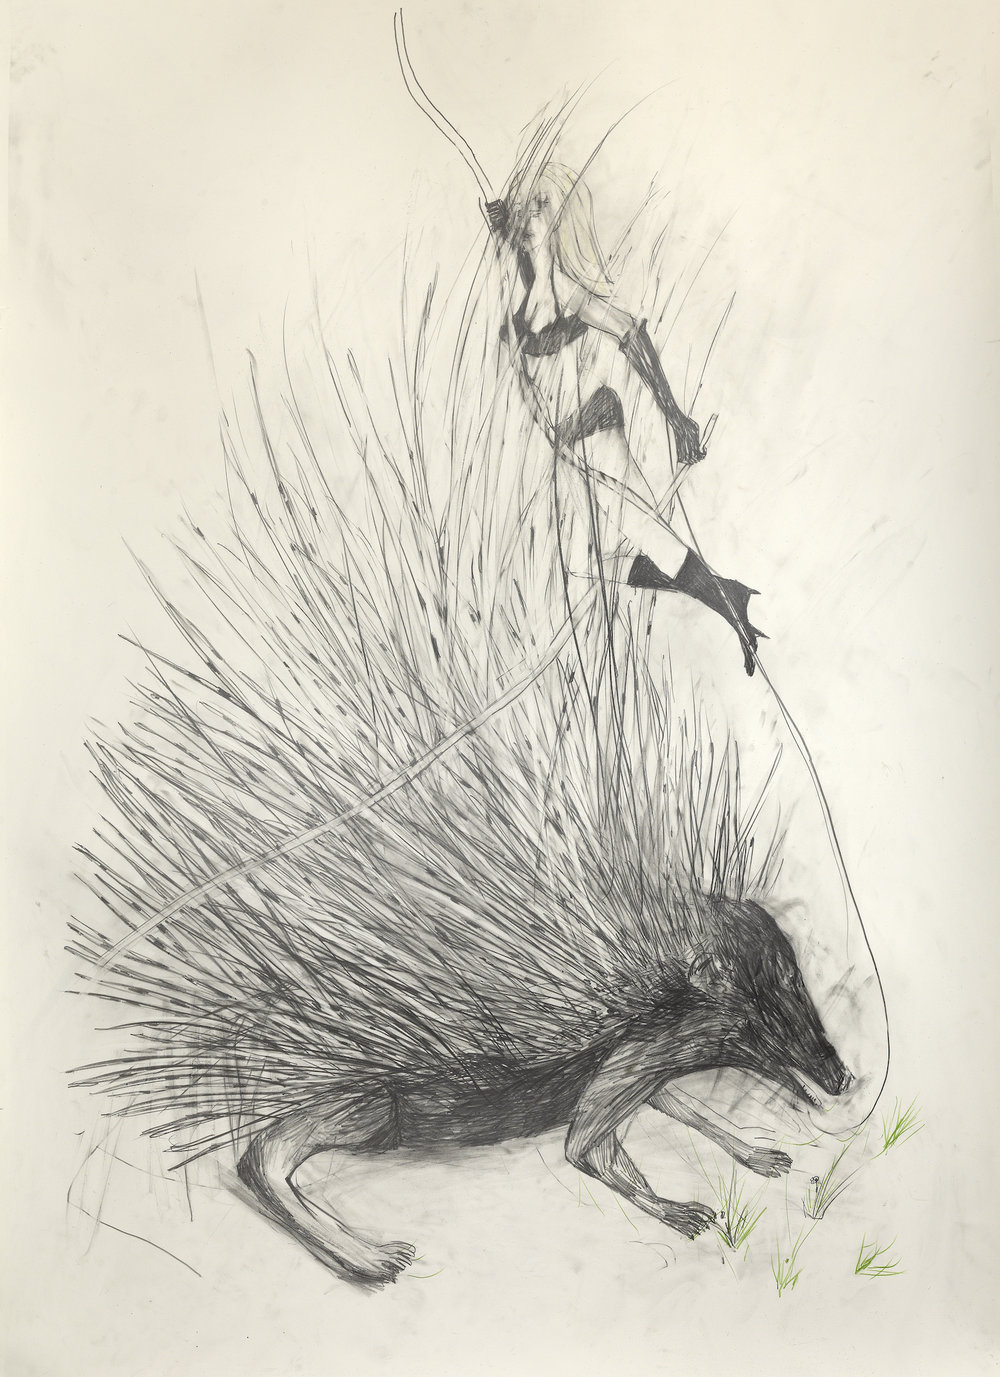 Lady and Porcupine